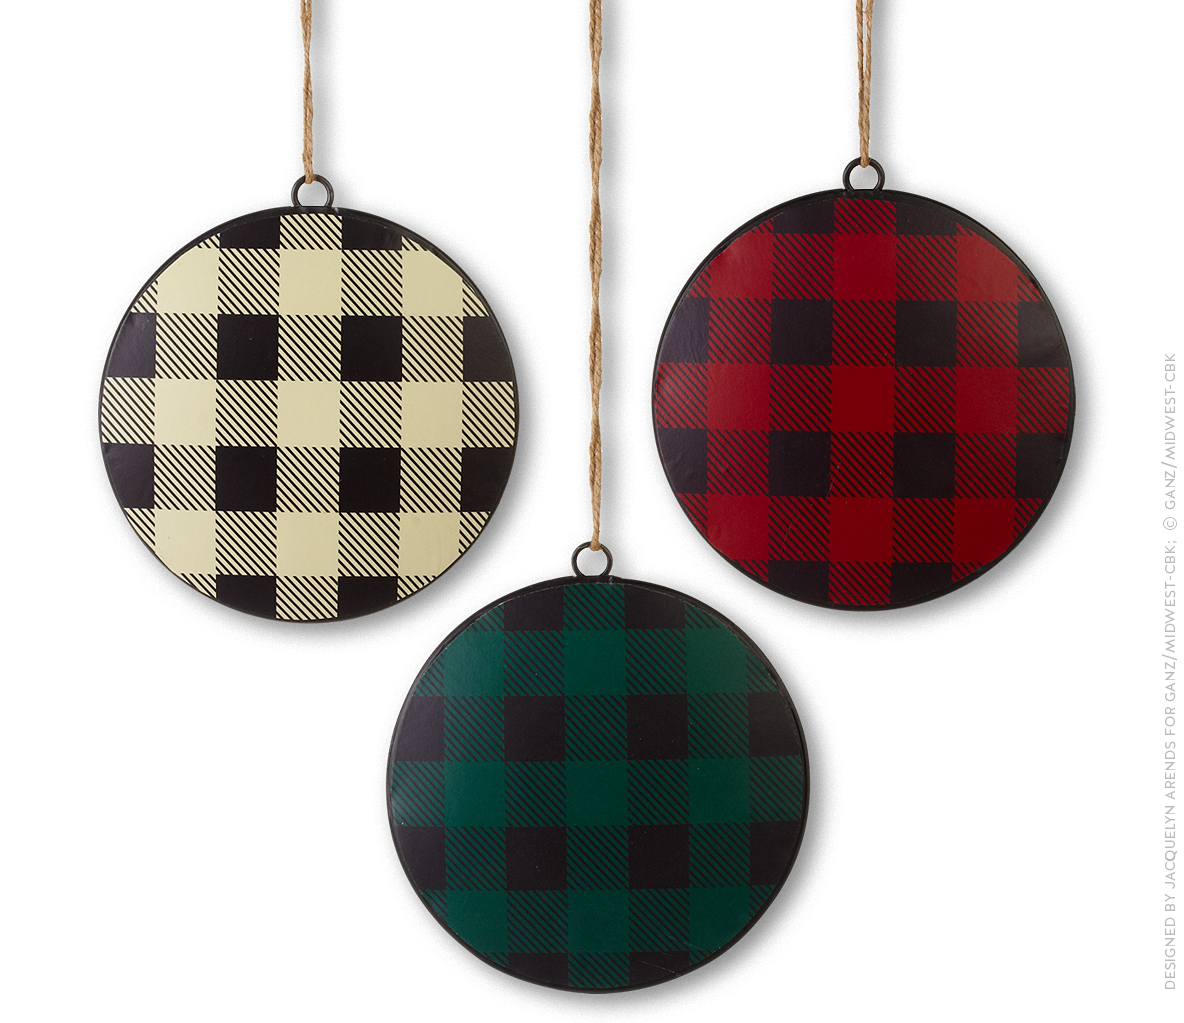 Plaid Puffed Metal Ornaments; © Ganz/Midwest-CBK 2019